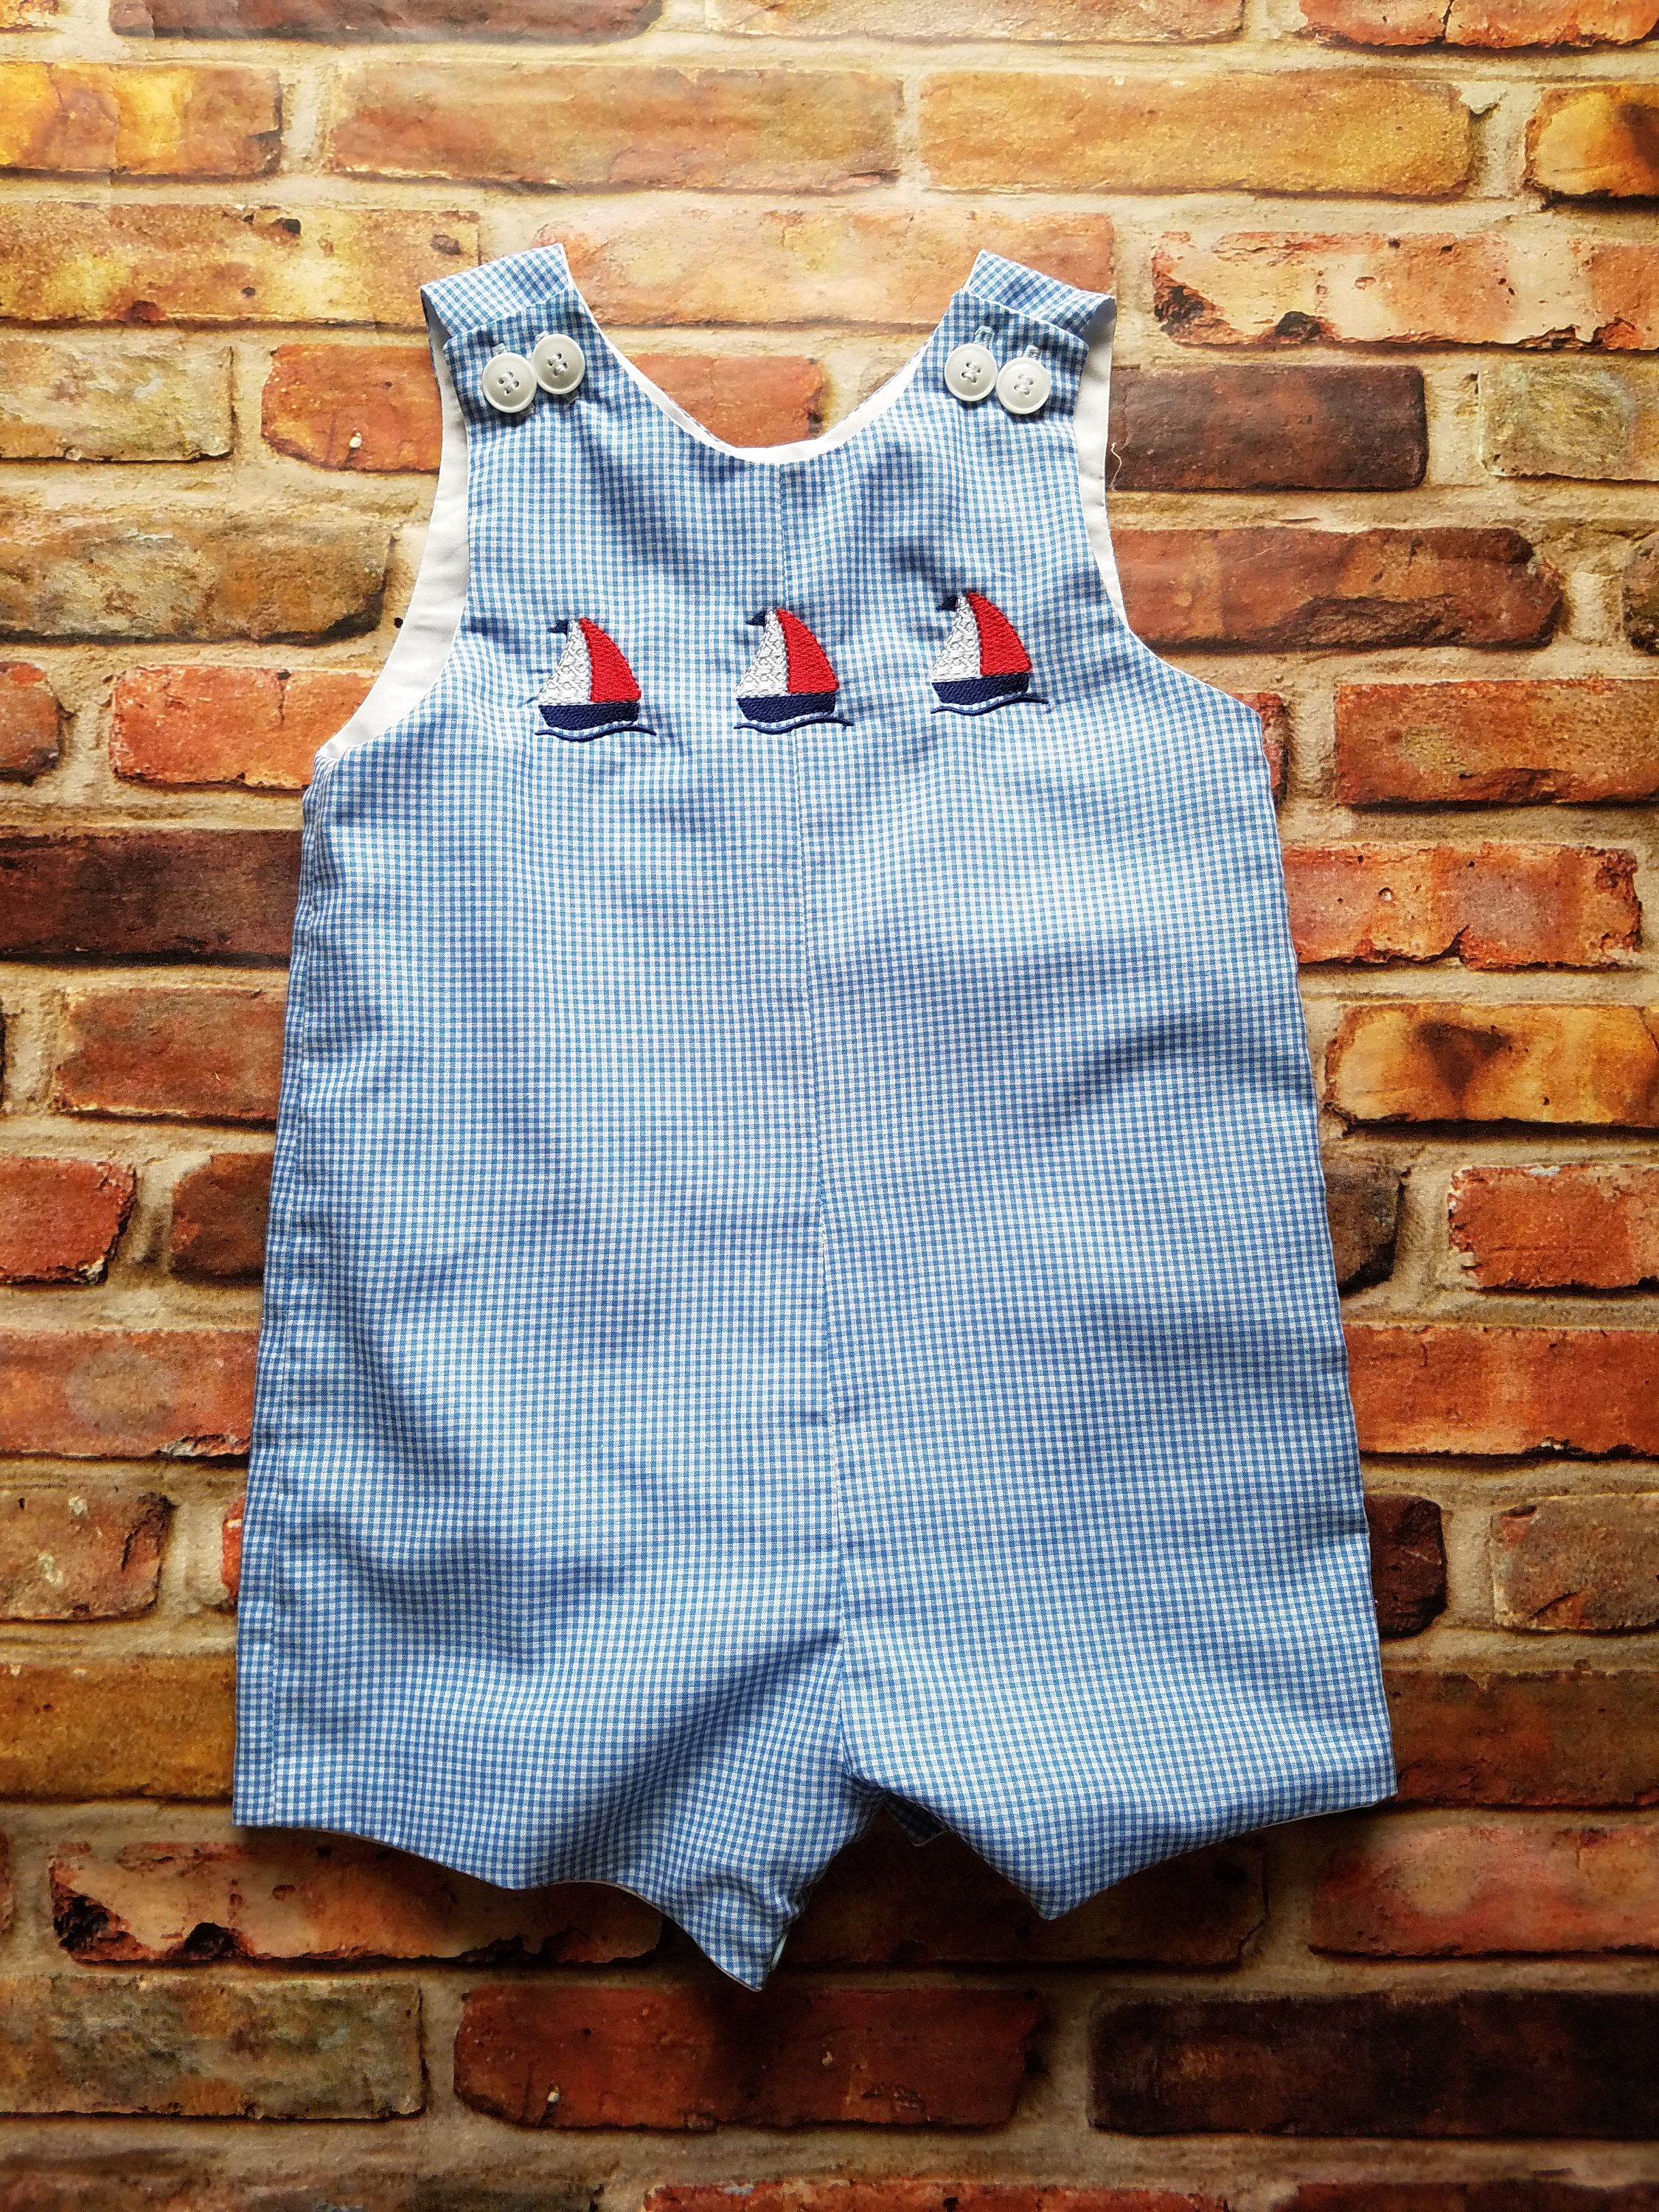 9328a0b74064c Sunsuit/romper with Embroidered sailboats, baby boy, toddler boy, beach  shorts, summertime overalls, boy romper, blue sunsuit, lined romper by ...